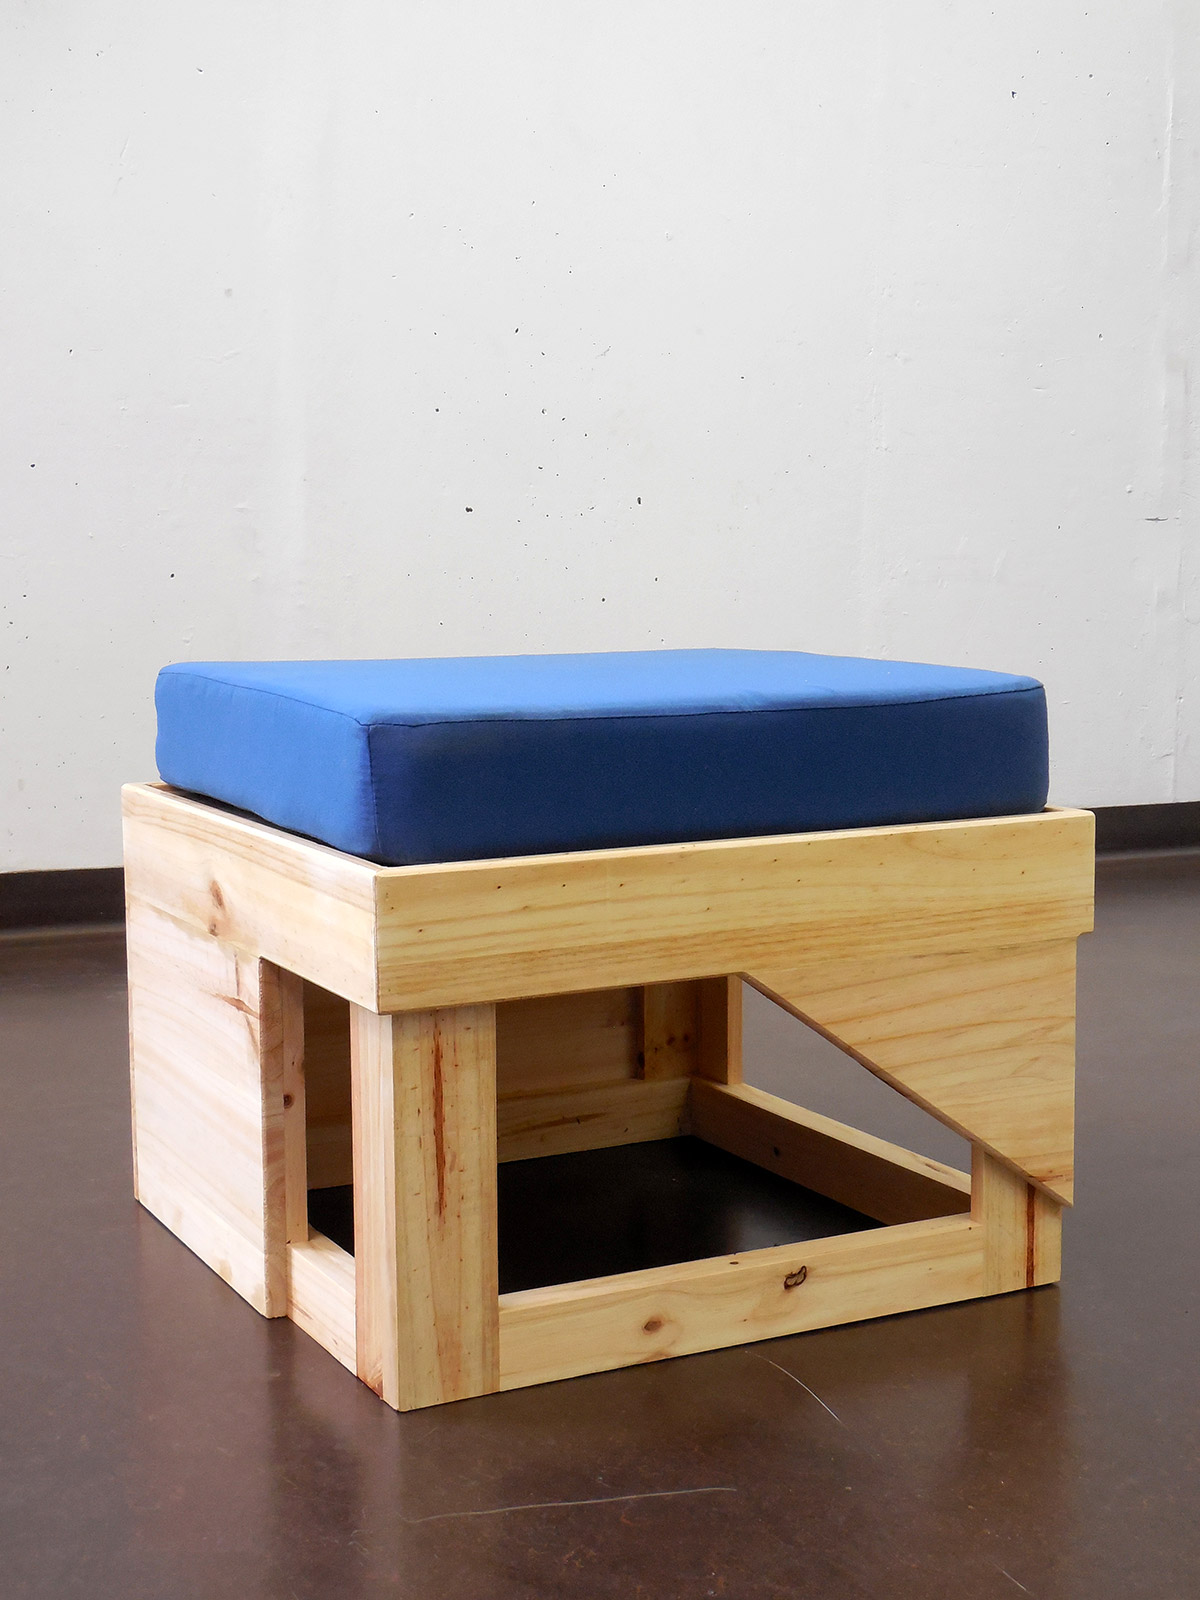 «Furniture for democracy», 2017, Pine wood, foam and cloth